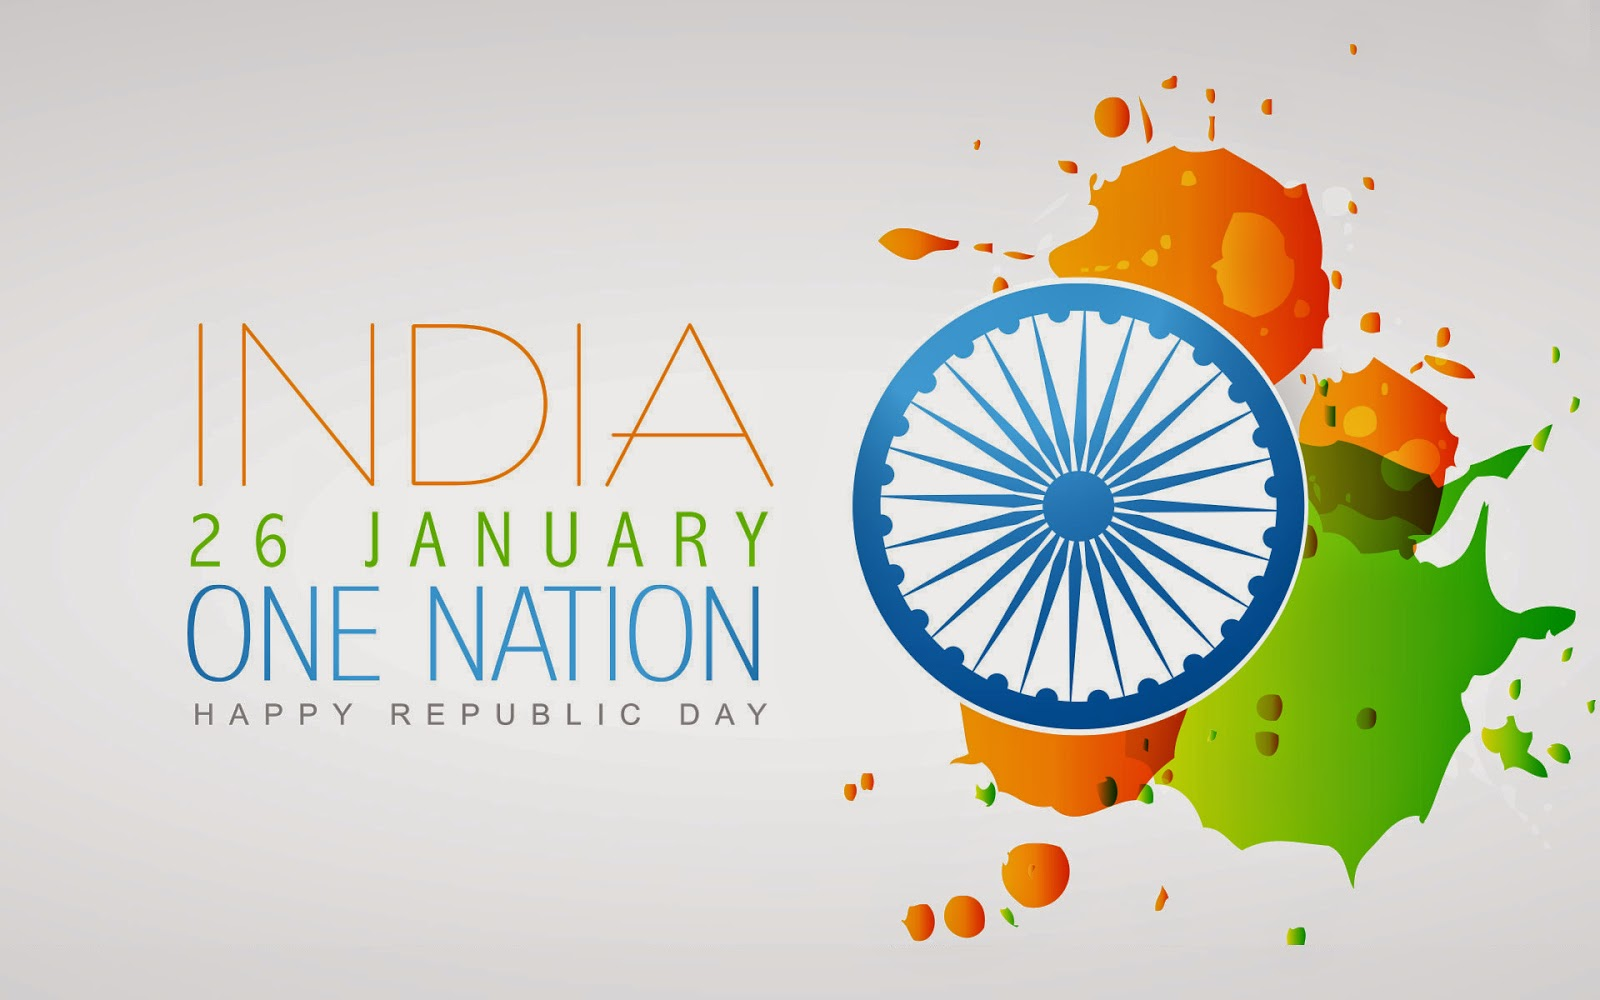 India Republic Day Images for Whatsapp DP, Profile Wallpapers Download